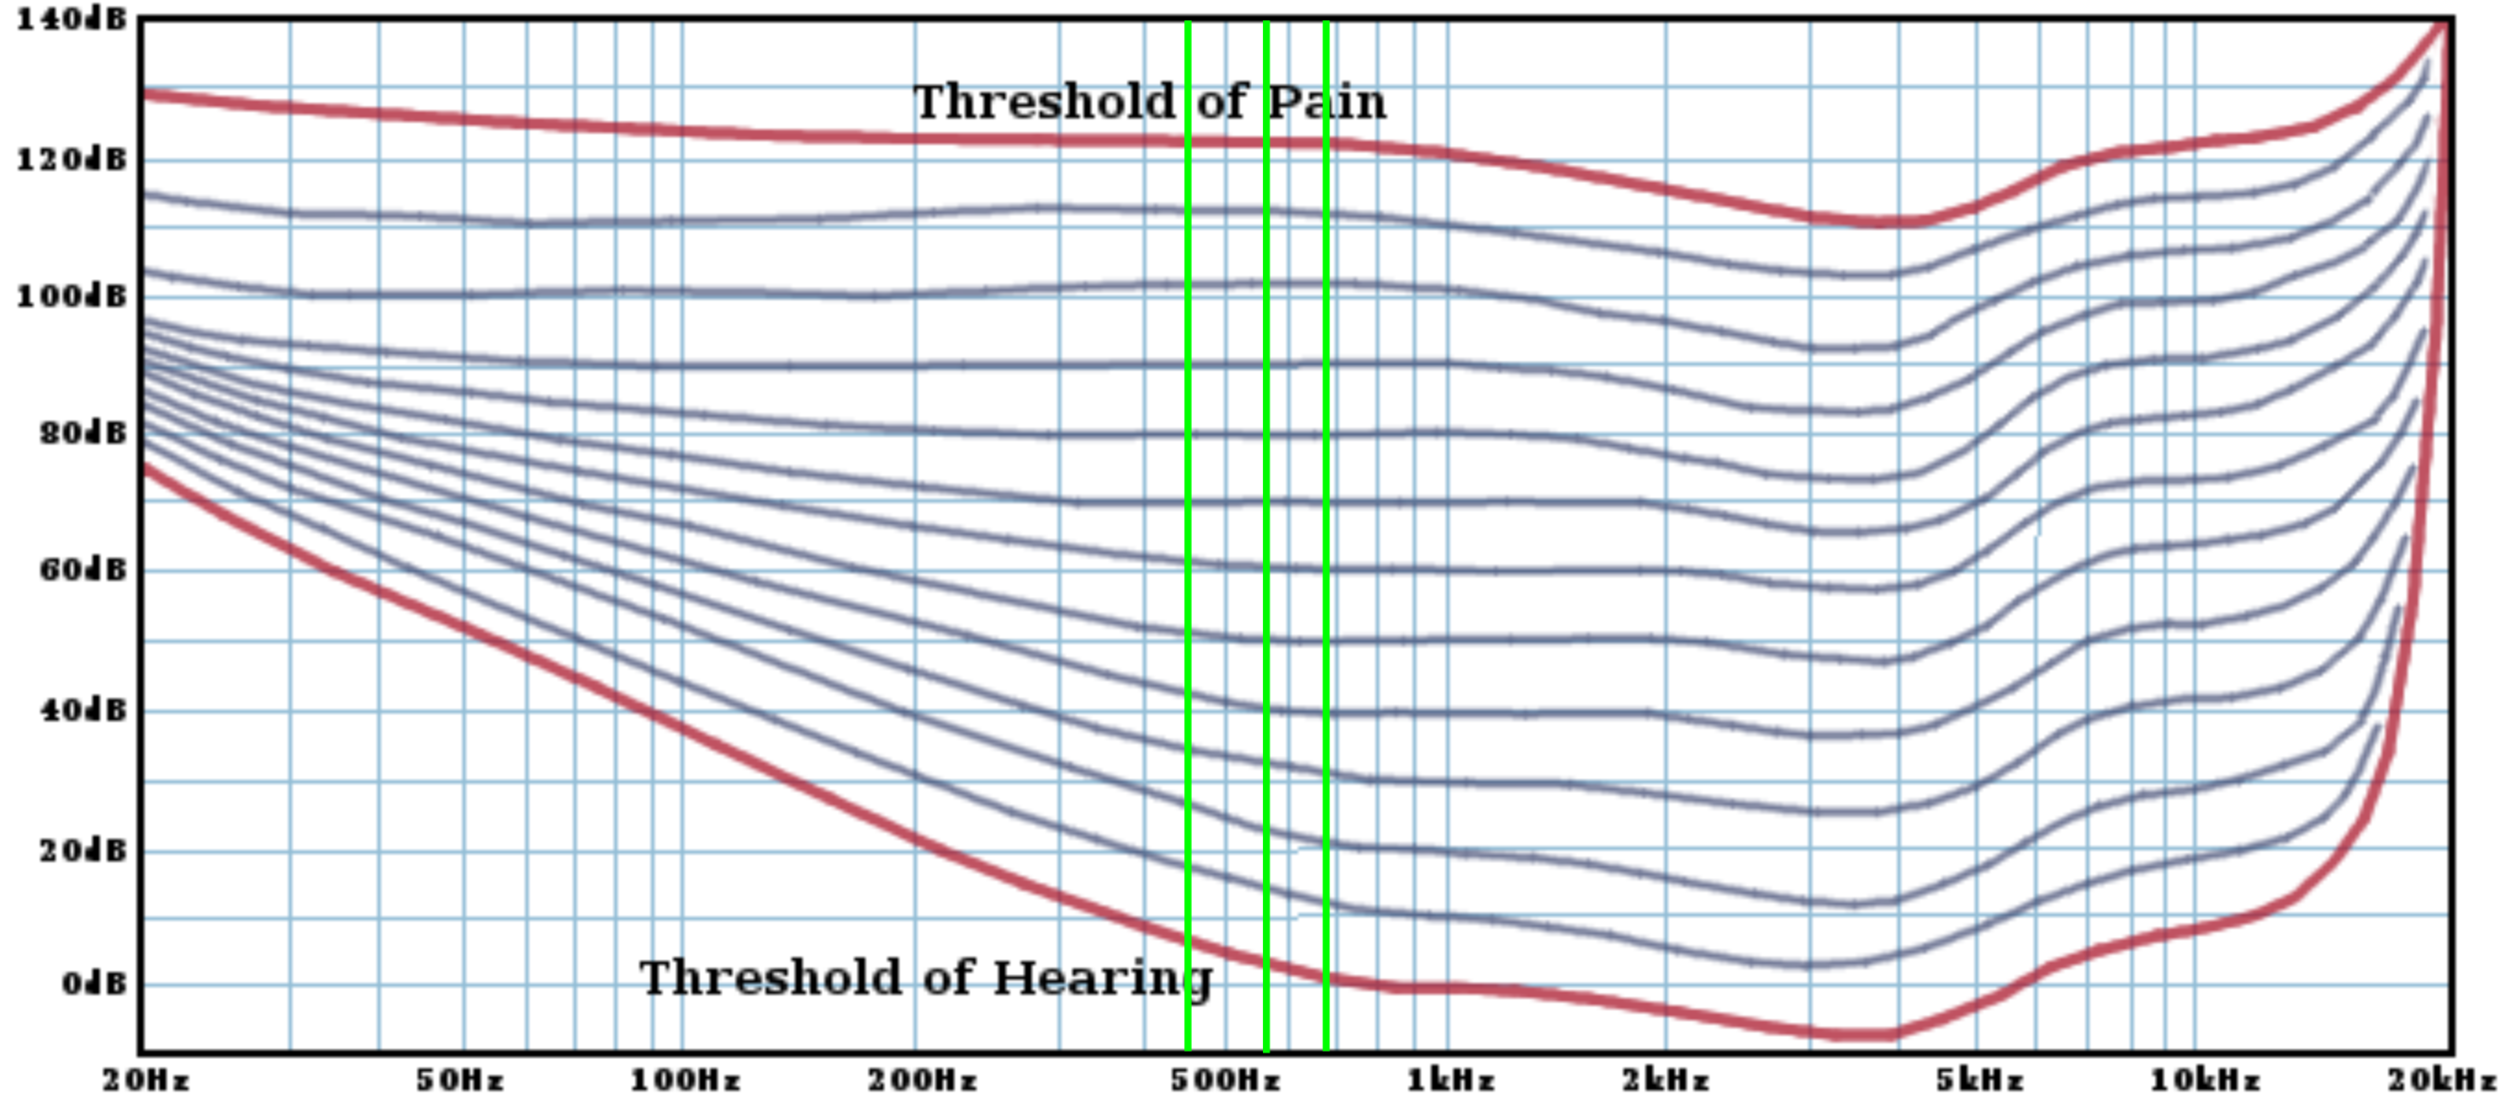 """"""" Approximate equal loudness curves derived from Fletcher and Munson (1933) plus modern sources for frequencies > 16kHz. The absolute threshold of hearing and threshold of pain curves are marked in red. Subsequent researchers refined these readings, culminating in the Phon scale and the ISO 226 standard equal loudness curves. Modern data indicates that the ear is significantly less sensitive to low frequencies than Fletcher and Munson's results. """" Image and description from  this fantastic article by Monty from xiph   Green vertical lines added compared to original image, used with permission (C) Copyright 2012 Red Hat Inc. and Xiph.Org"""